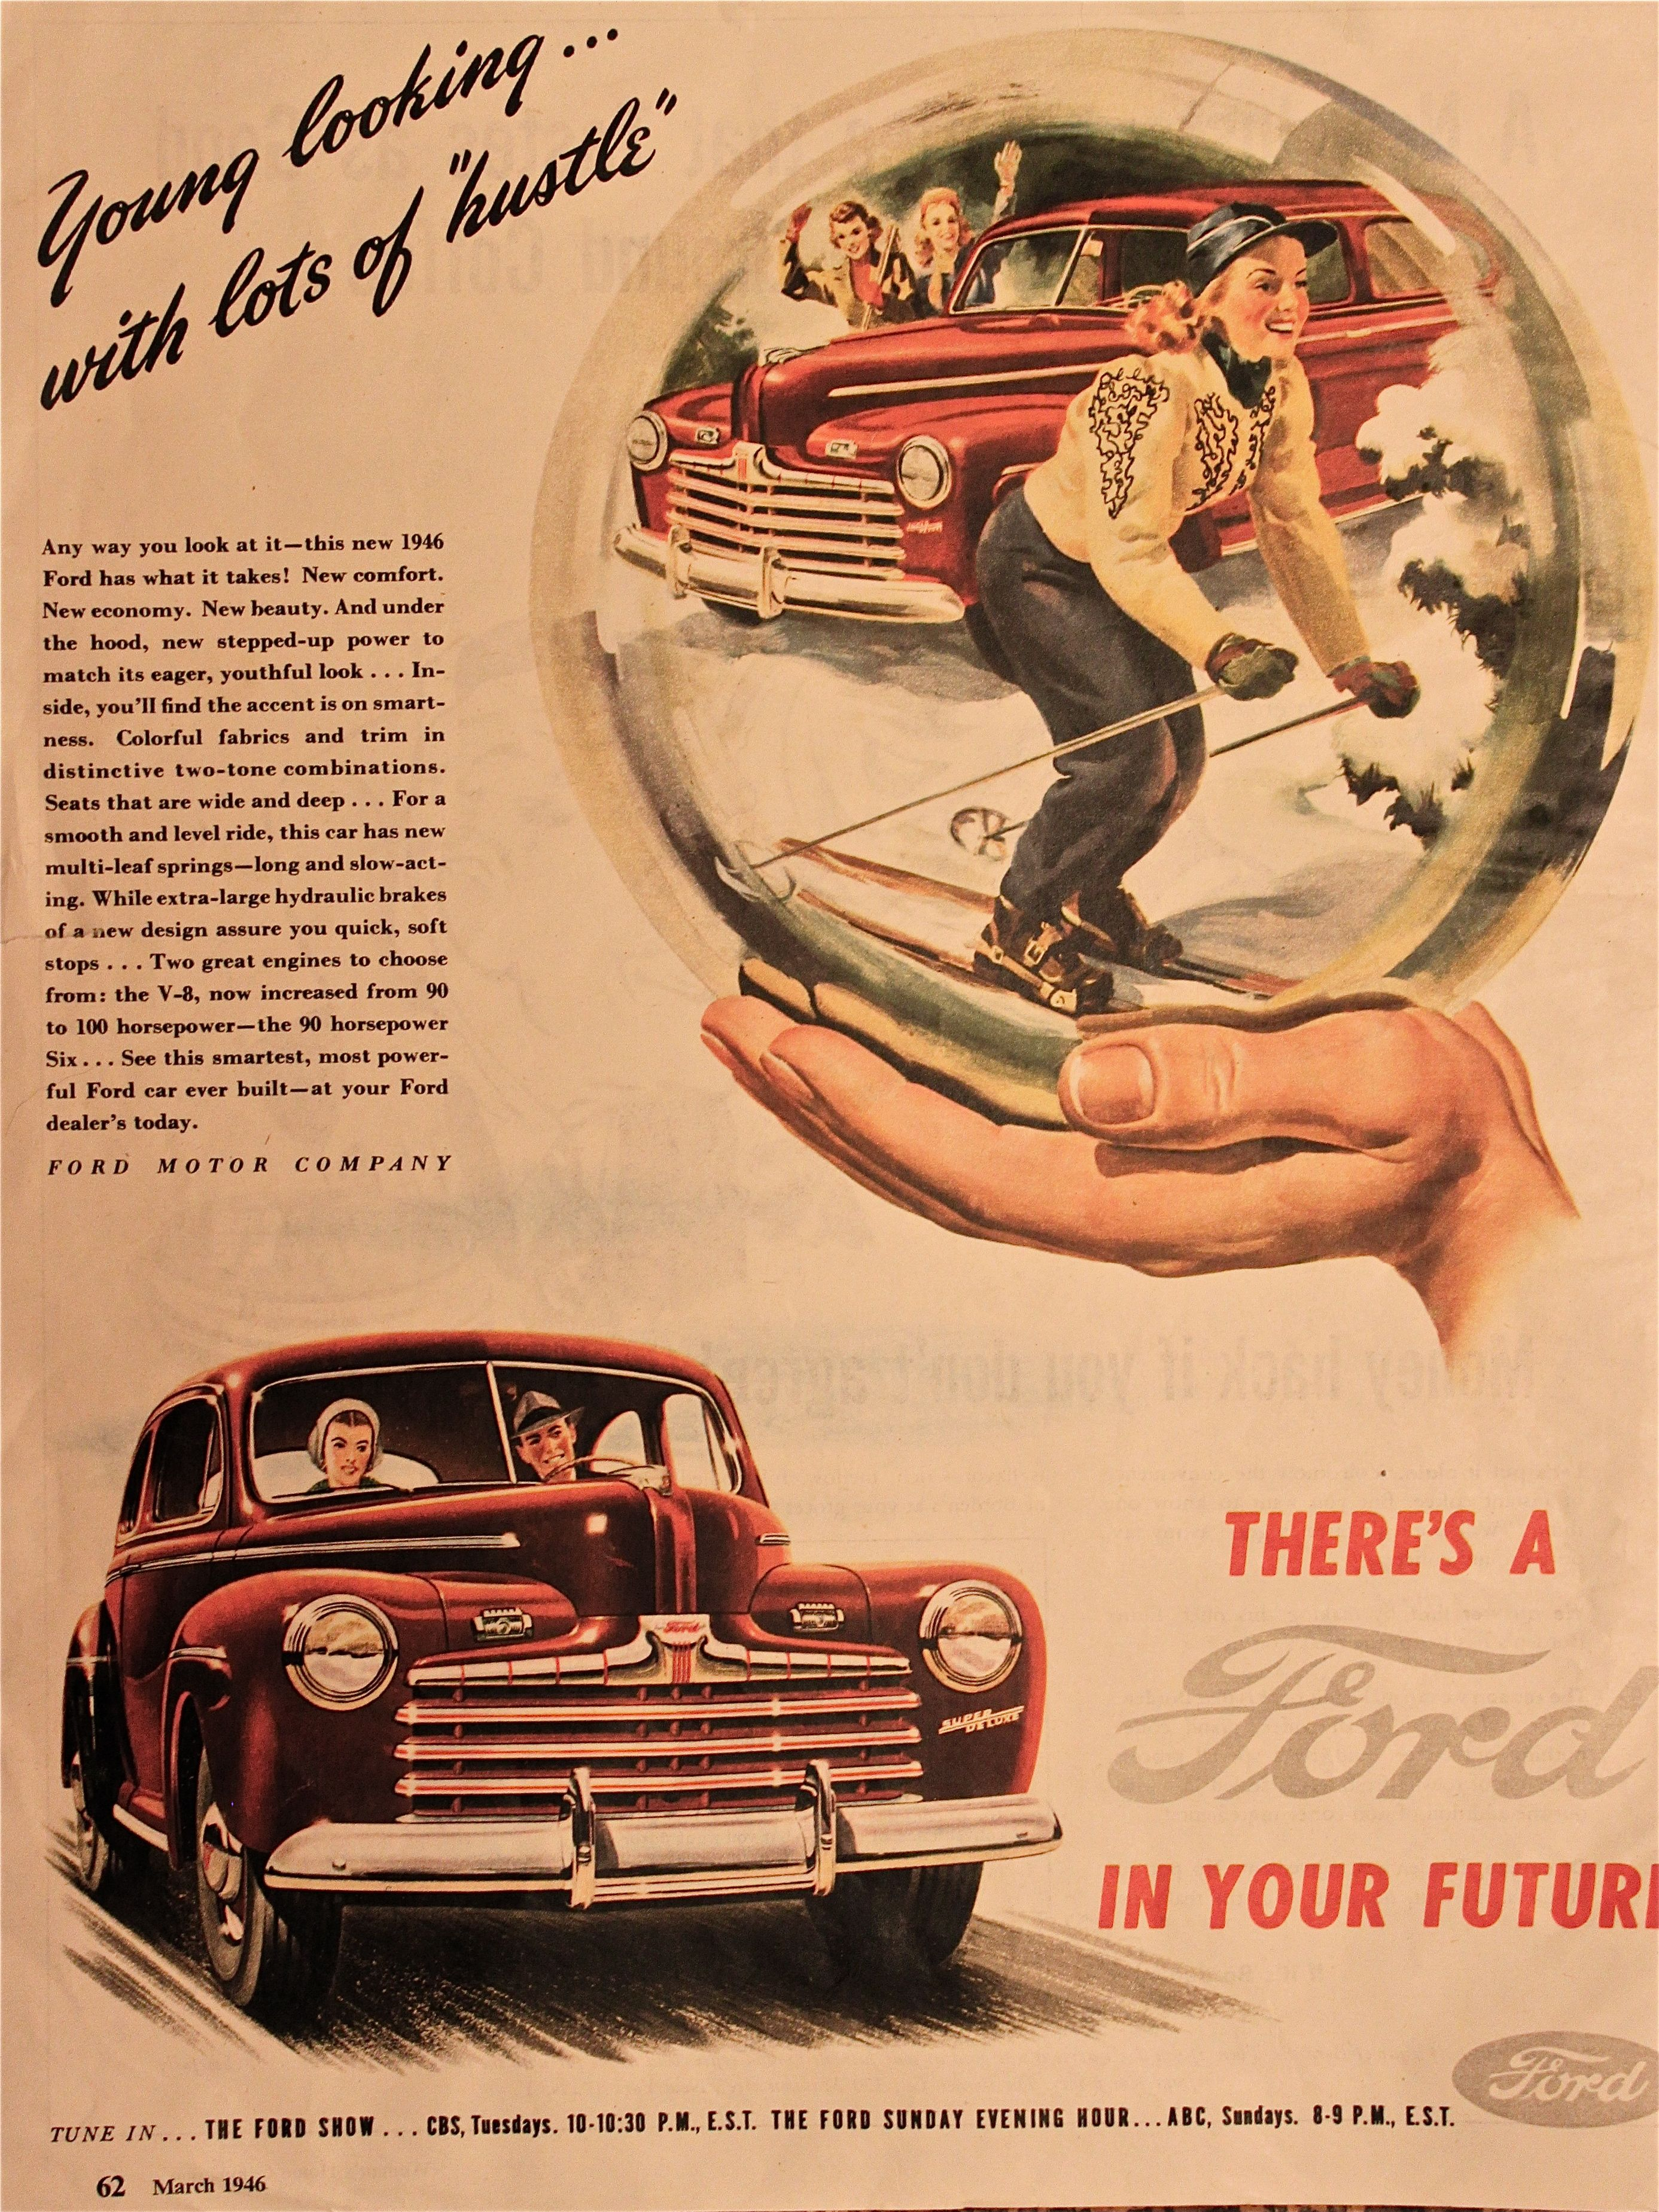 Pin by Anne Sofie Nomeland on Old commercials | Pinterest | Ford ...